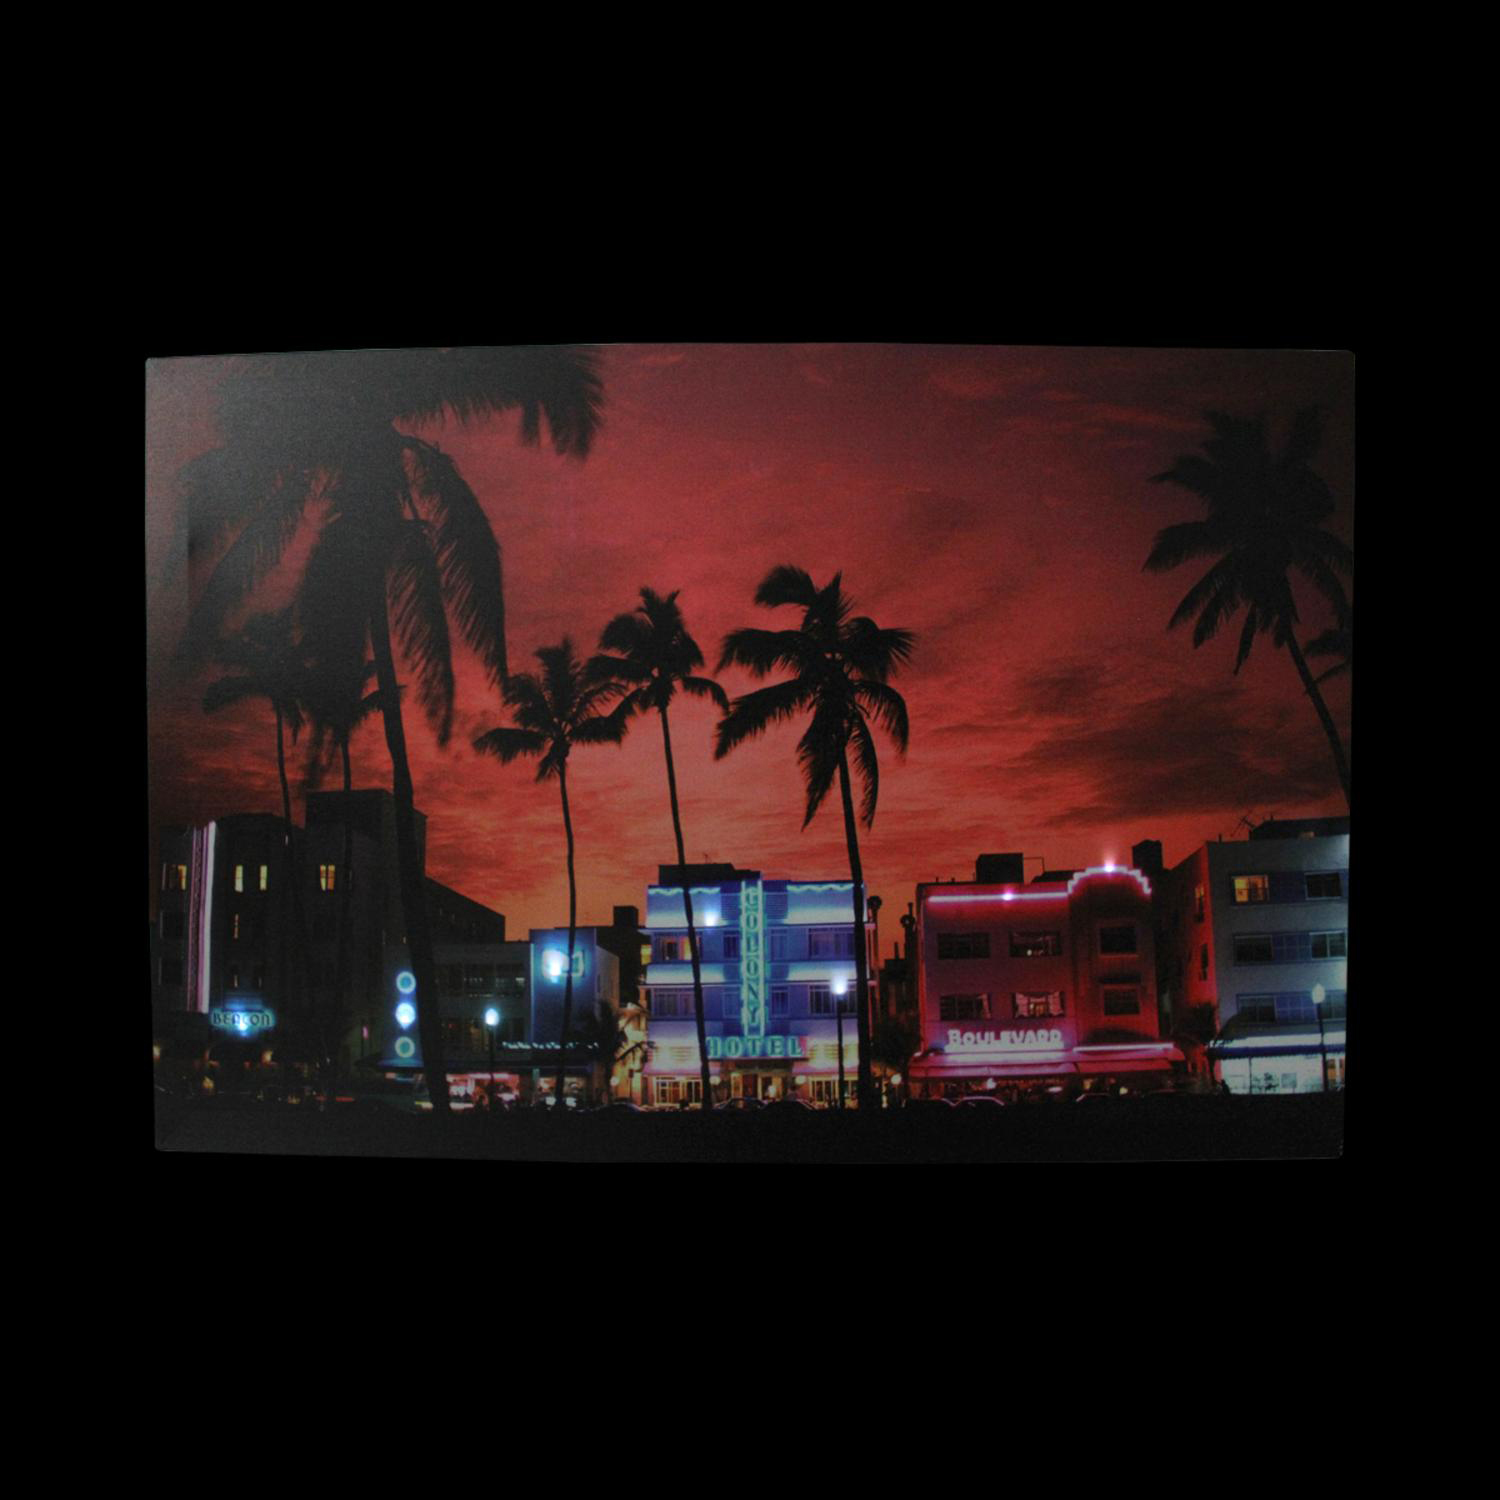 LED Light-Up Famous South Beach Miami Nightlife Scene Canvas Wall Art